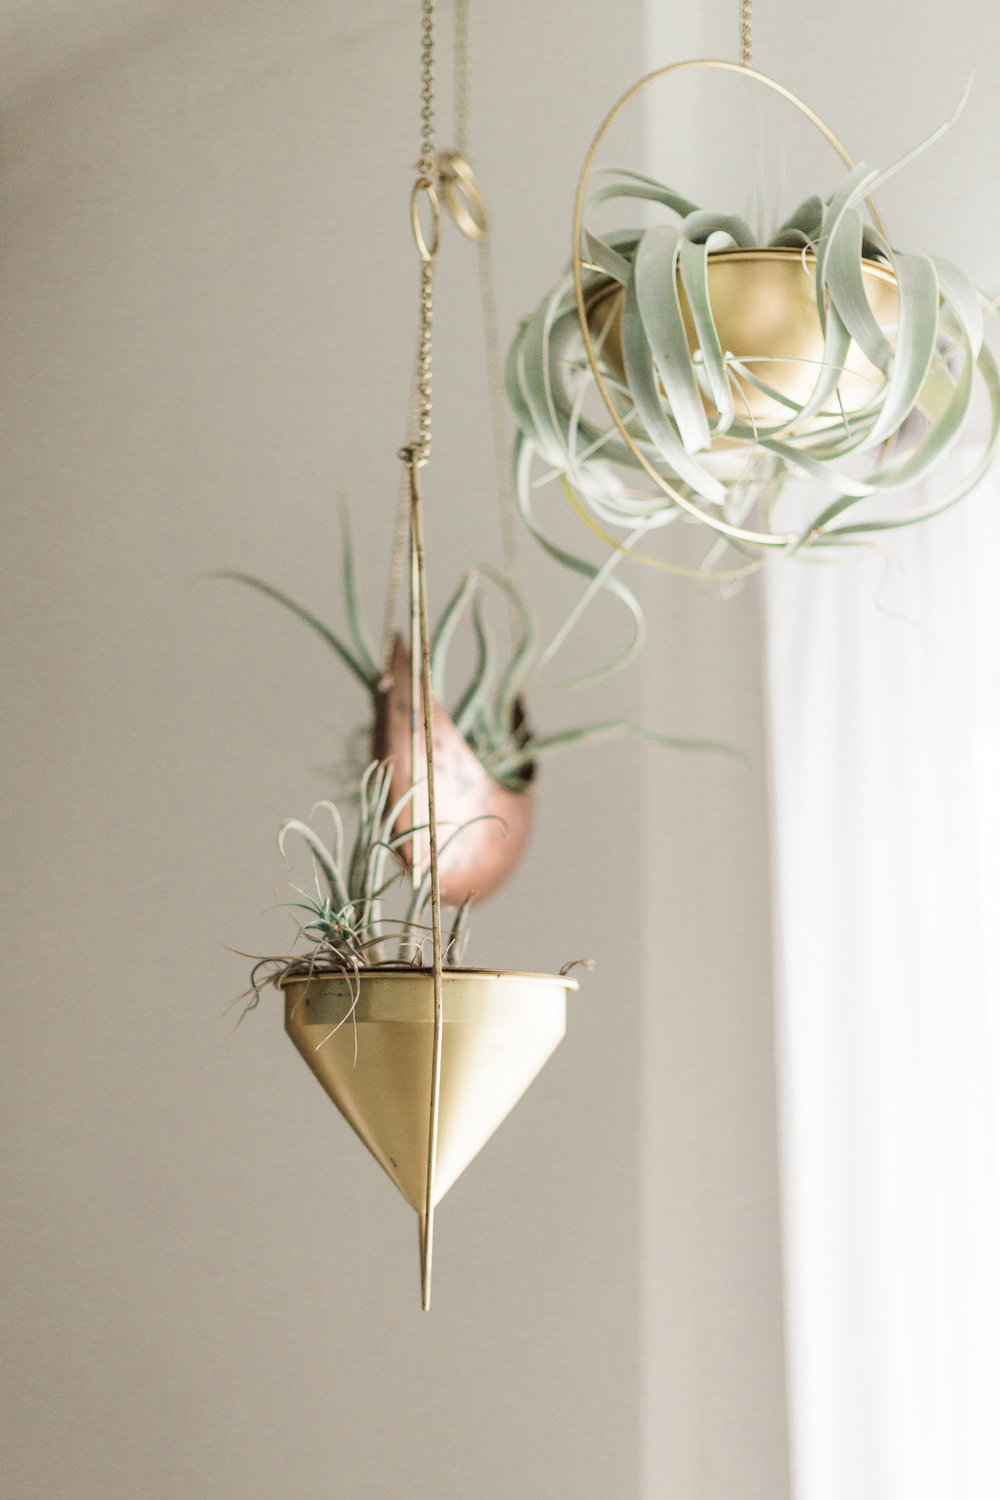 Air plant decor | A Fabulous Fete